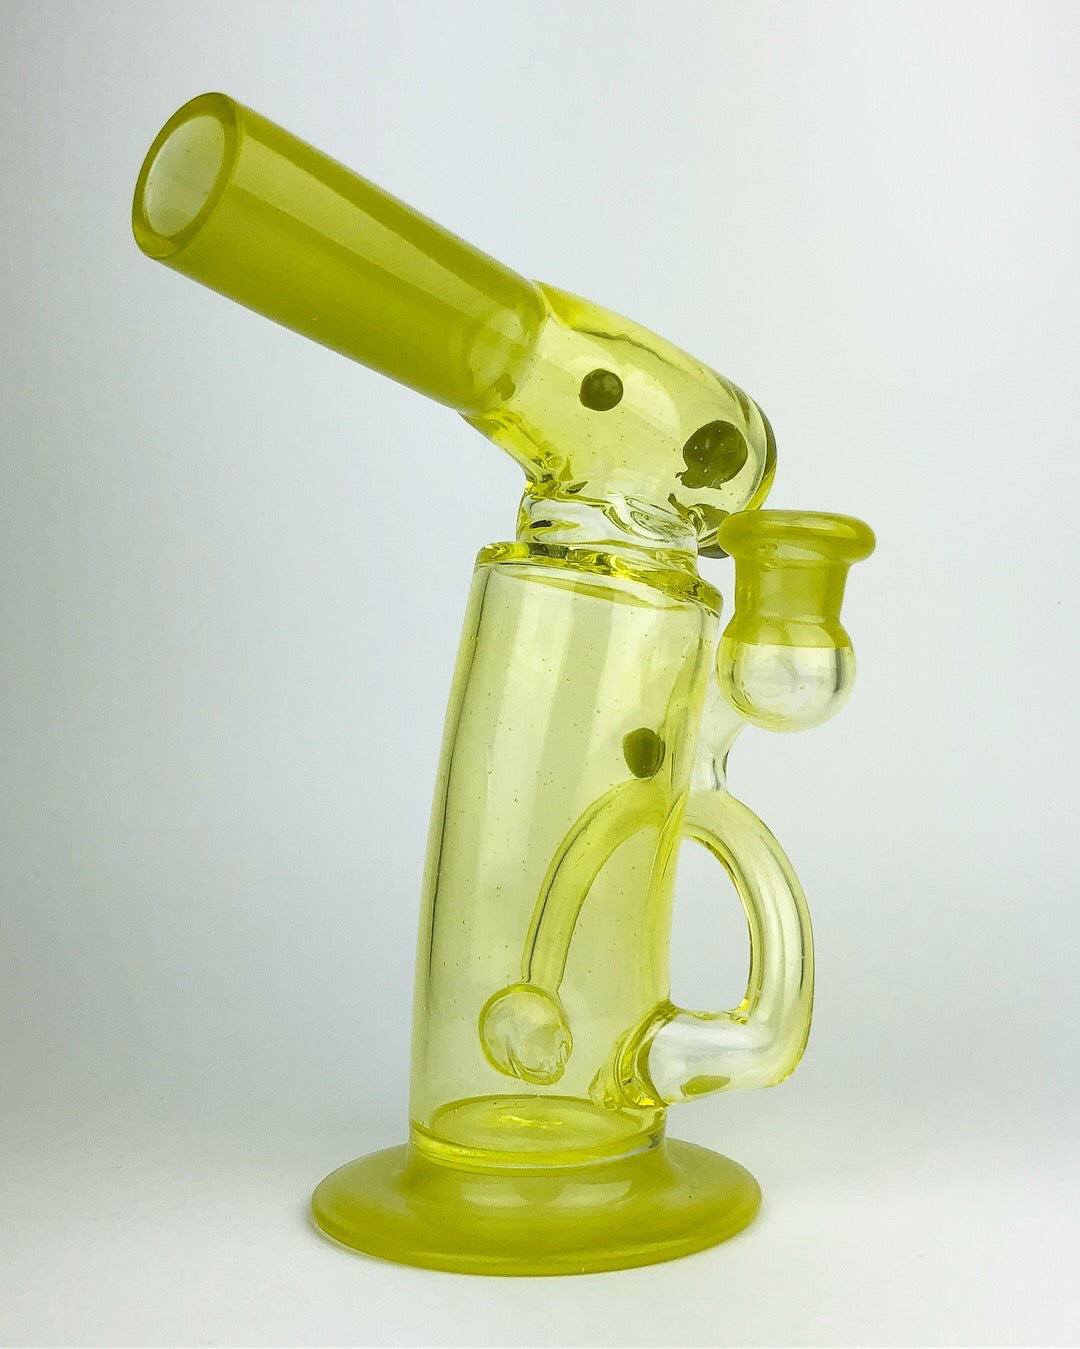 certo glass - thenorthboro - andrew certo - blazer - vector - lemon drop